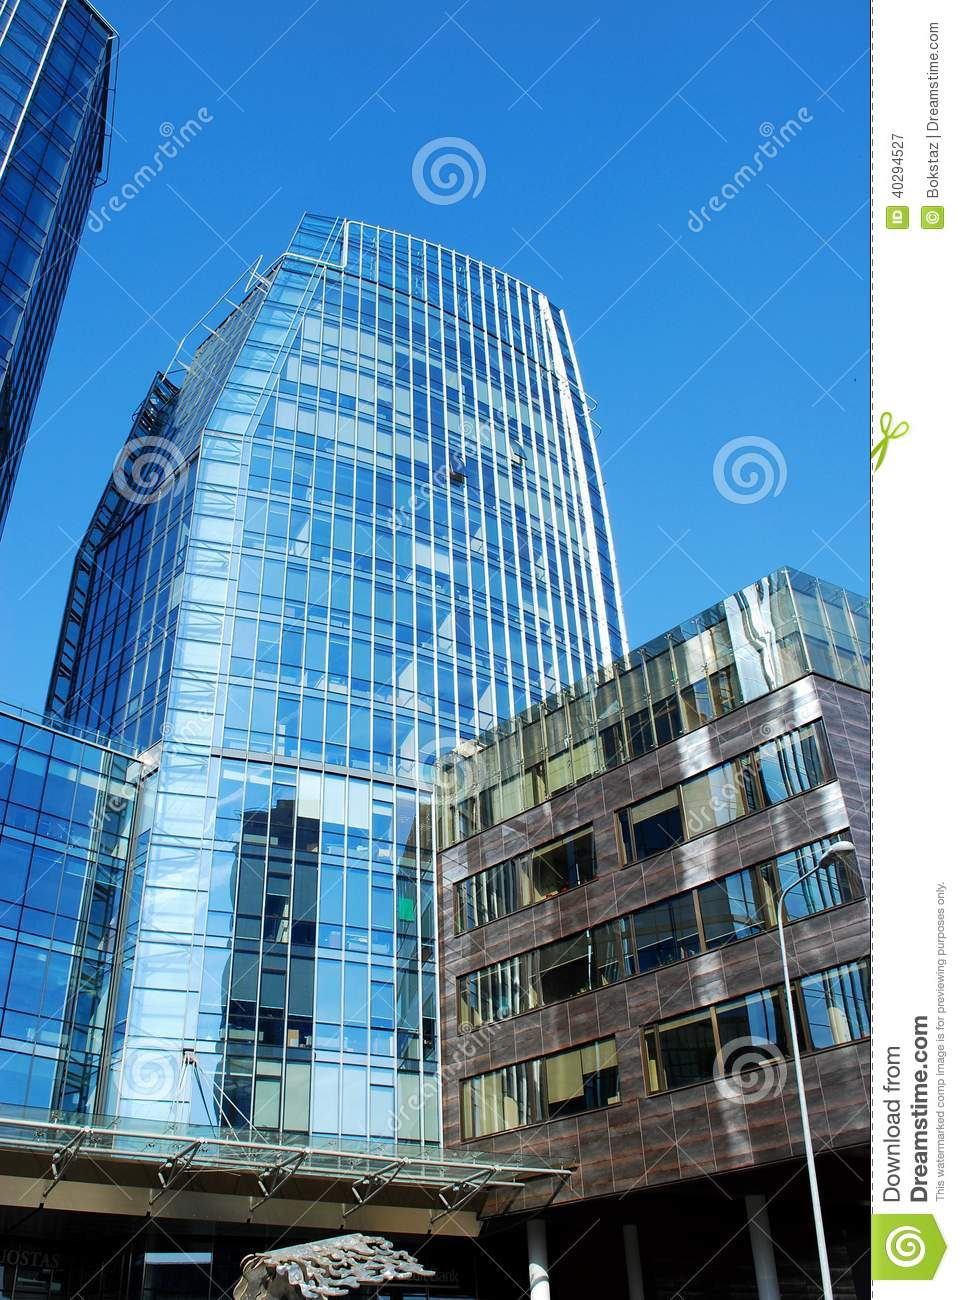 Corporate Business Building Modern Architecture Co...